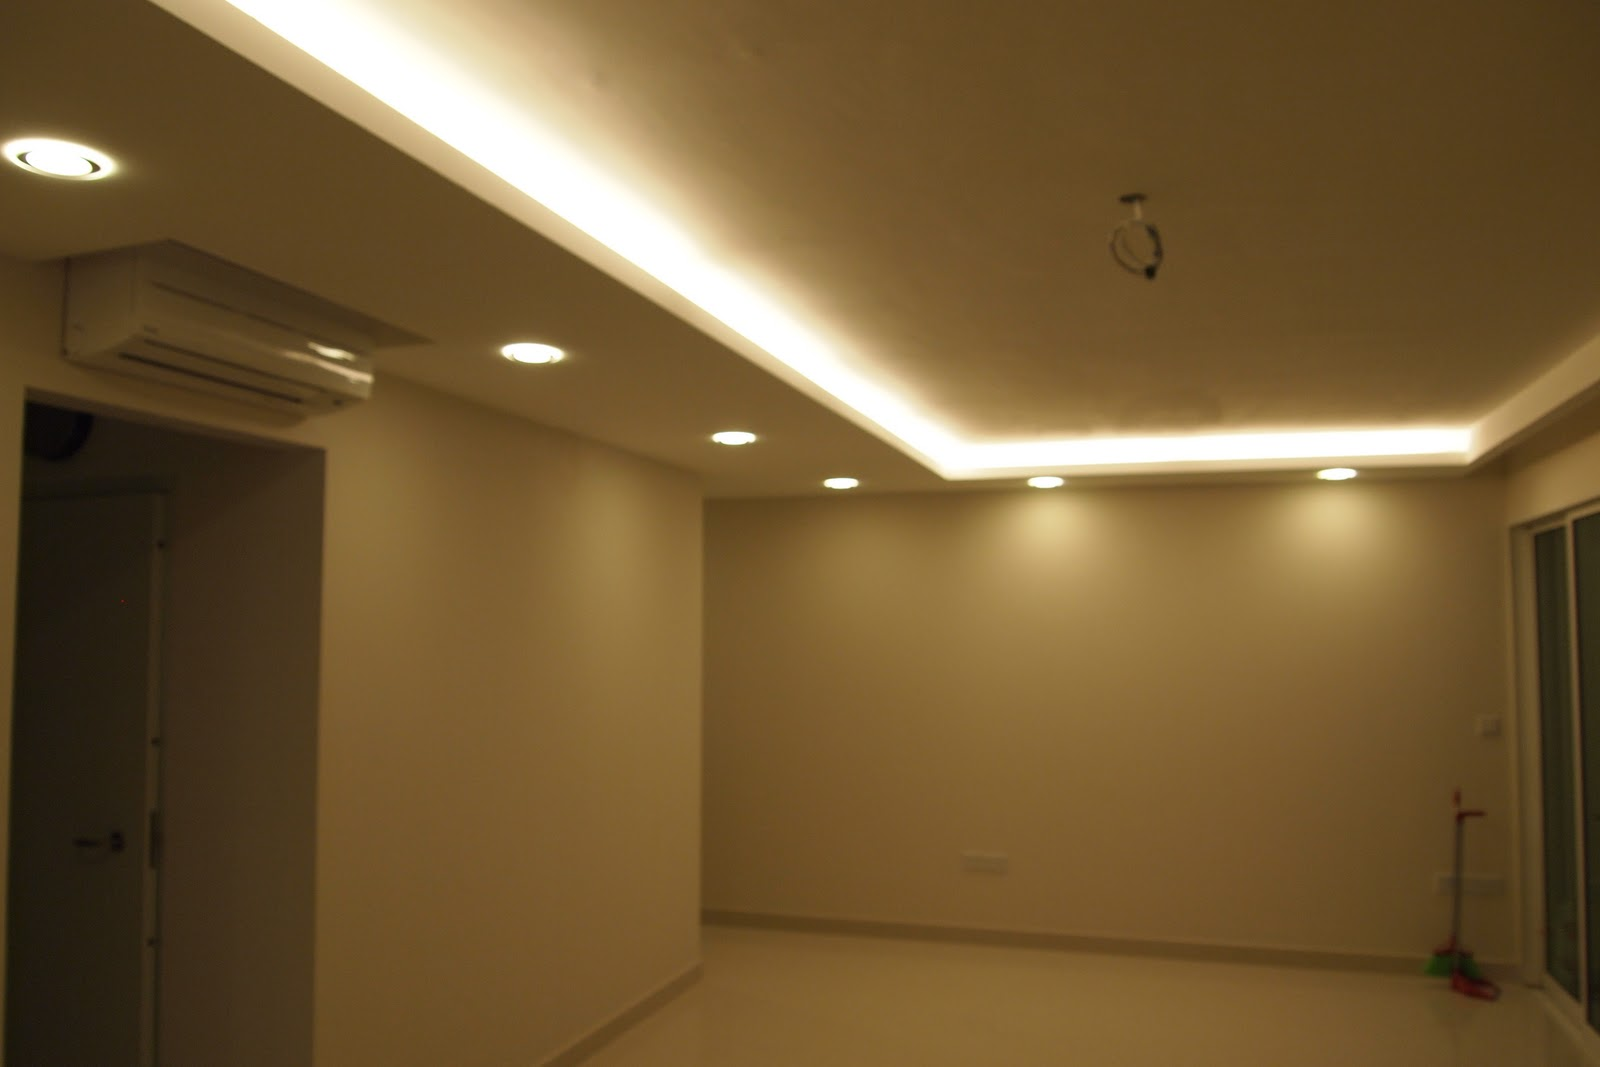 Plaster Ceiling & Partition Drywall Singapore: Park Central living ...